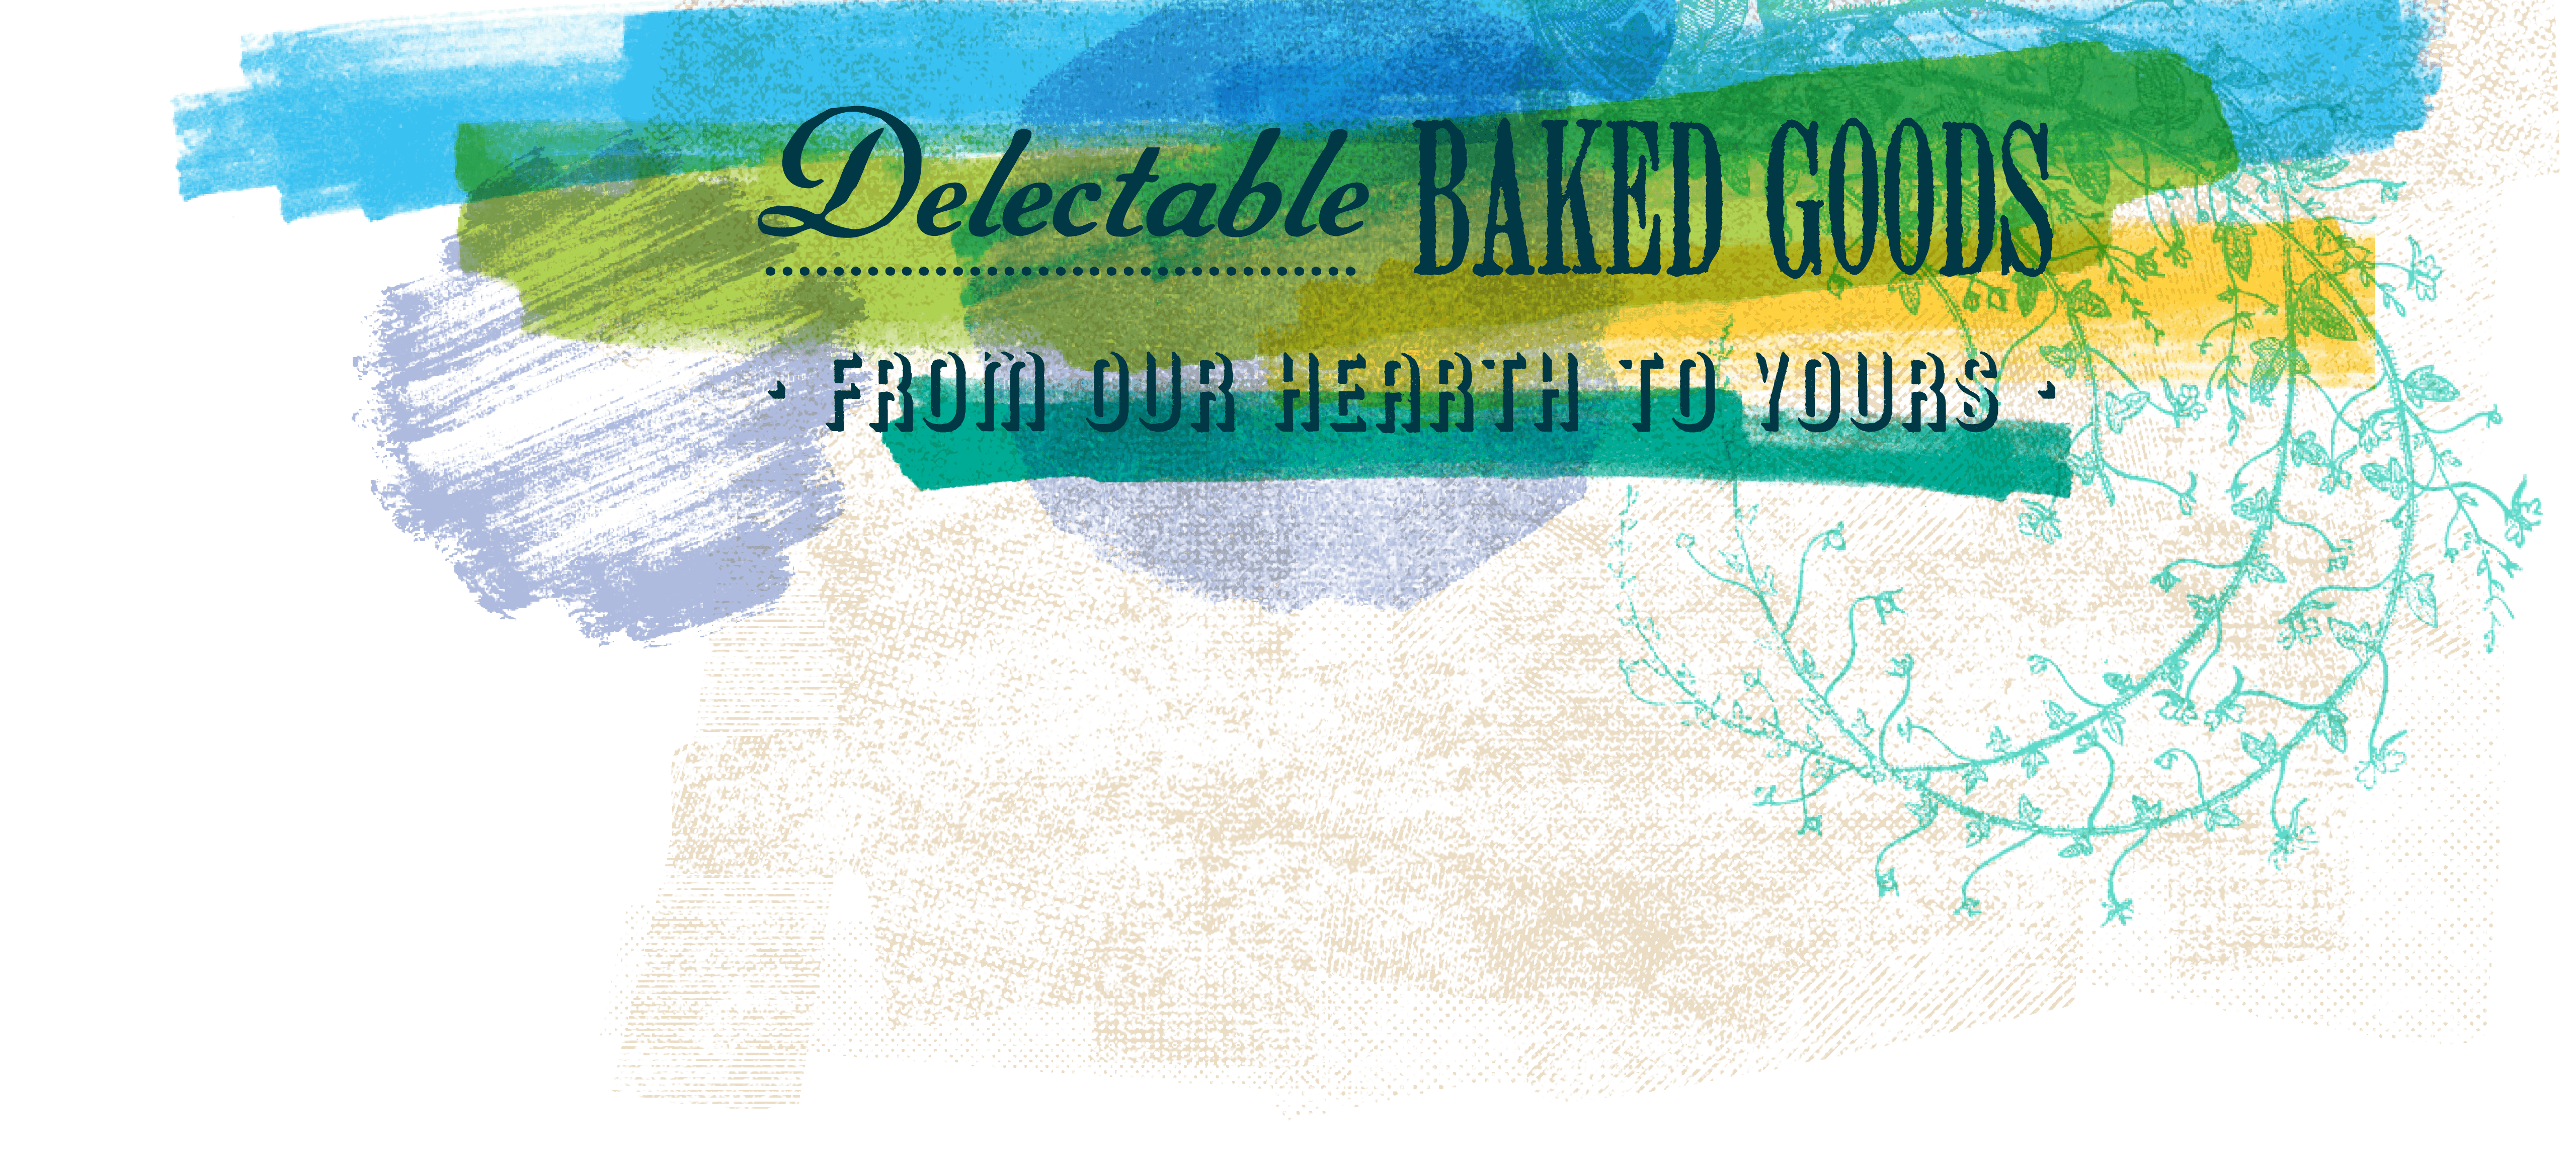 Delectable Baked Goods